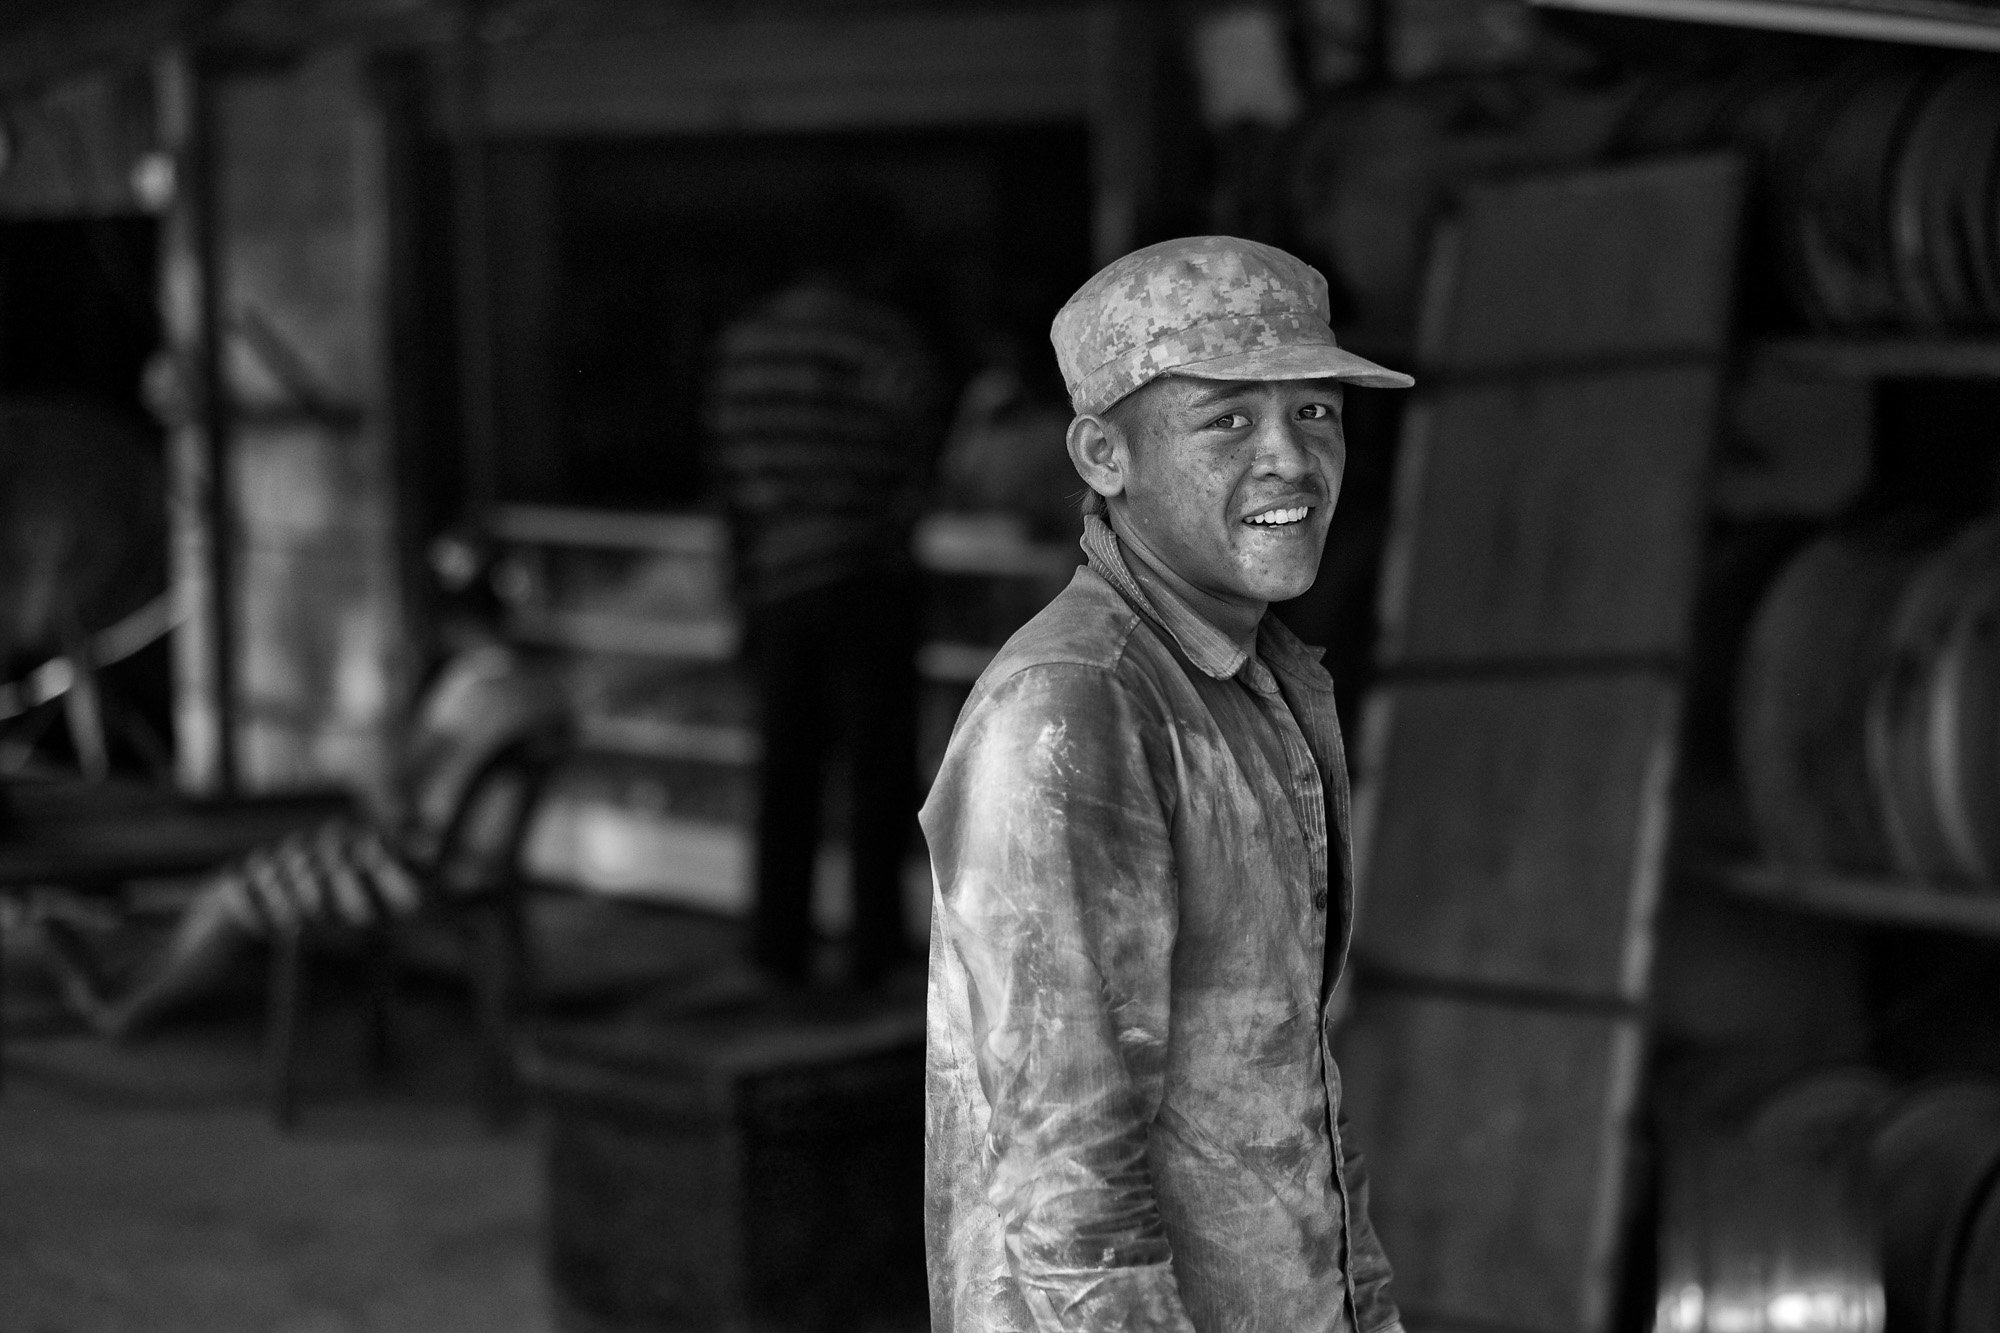 worker VIENTIANE Laos asia street photography photographer